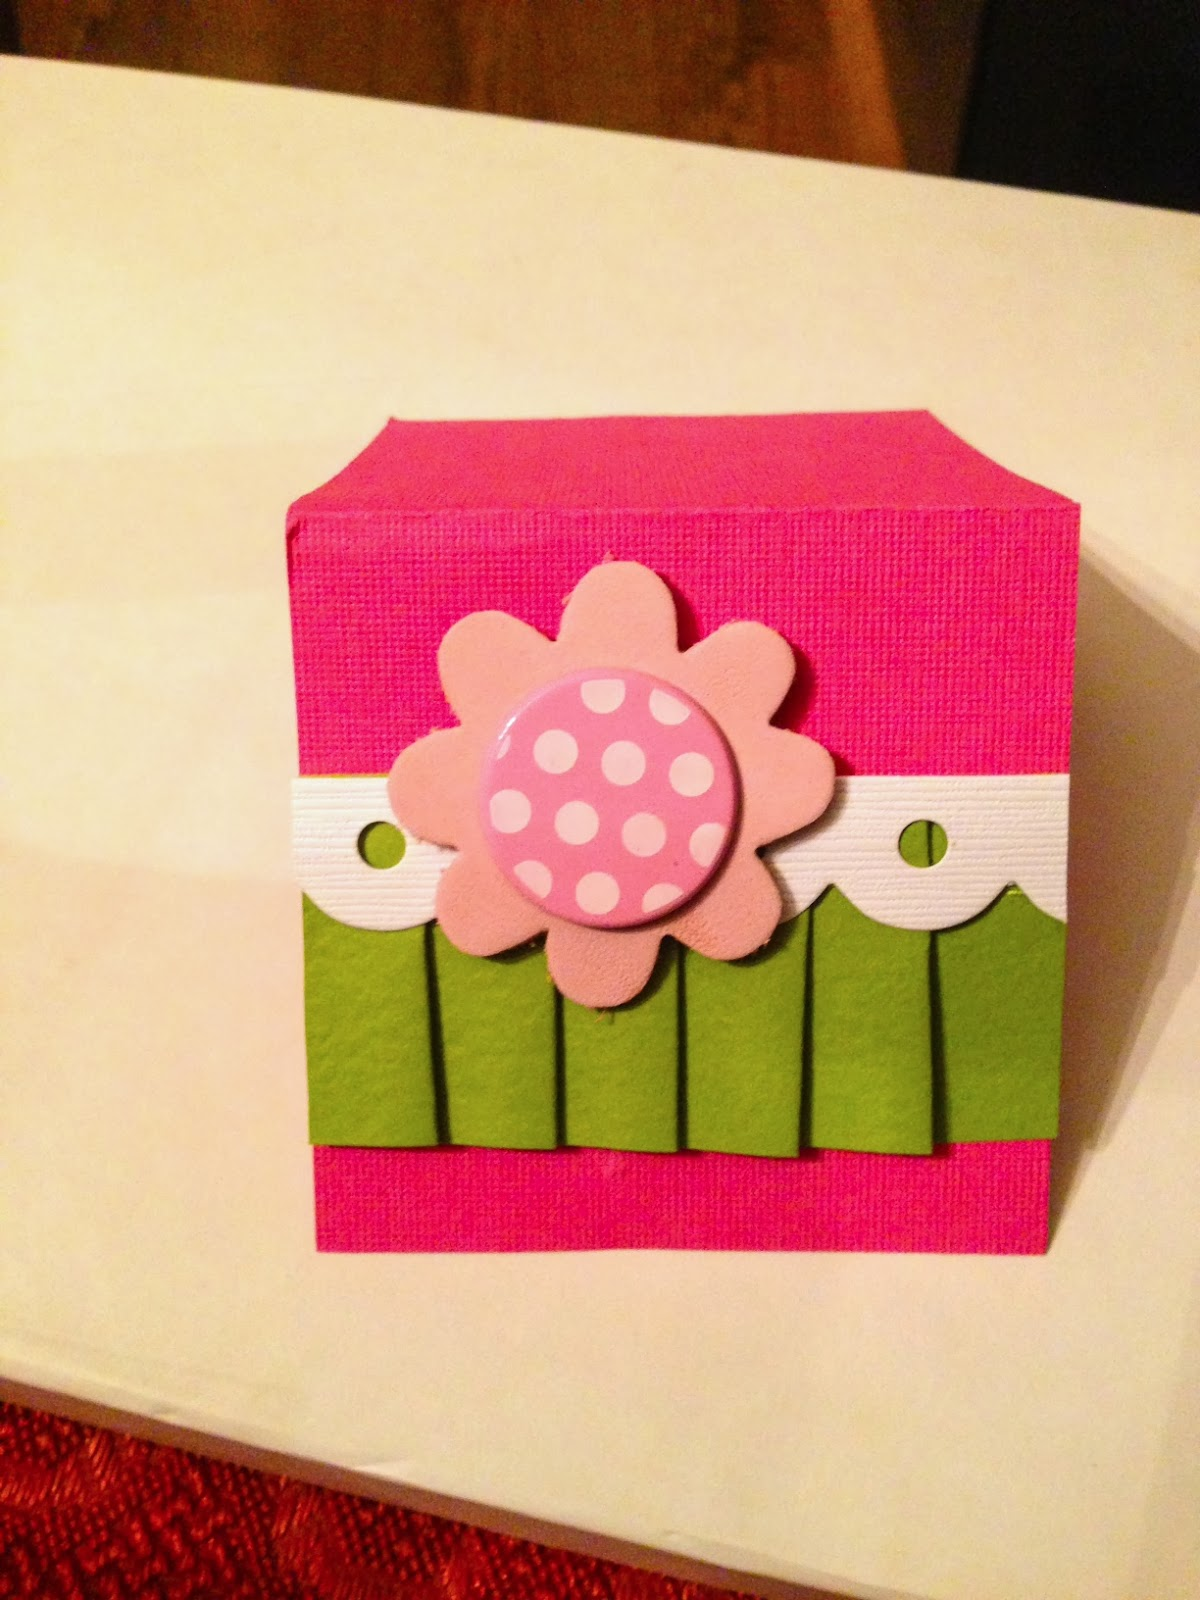 cardstock shaped border pleated border bazzill leather flower very old i think making memories and the polka dot brad is old also in my stash